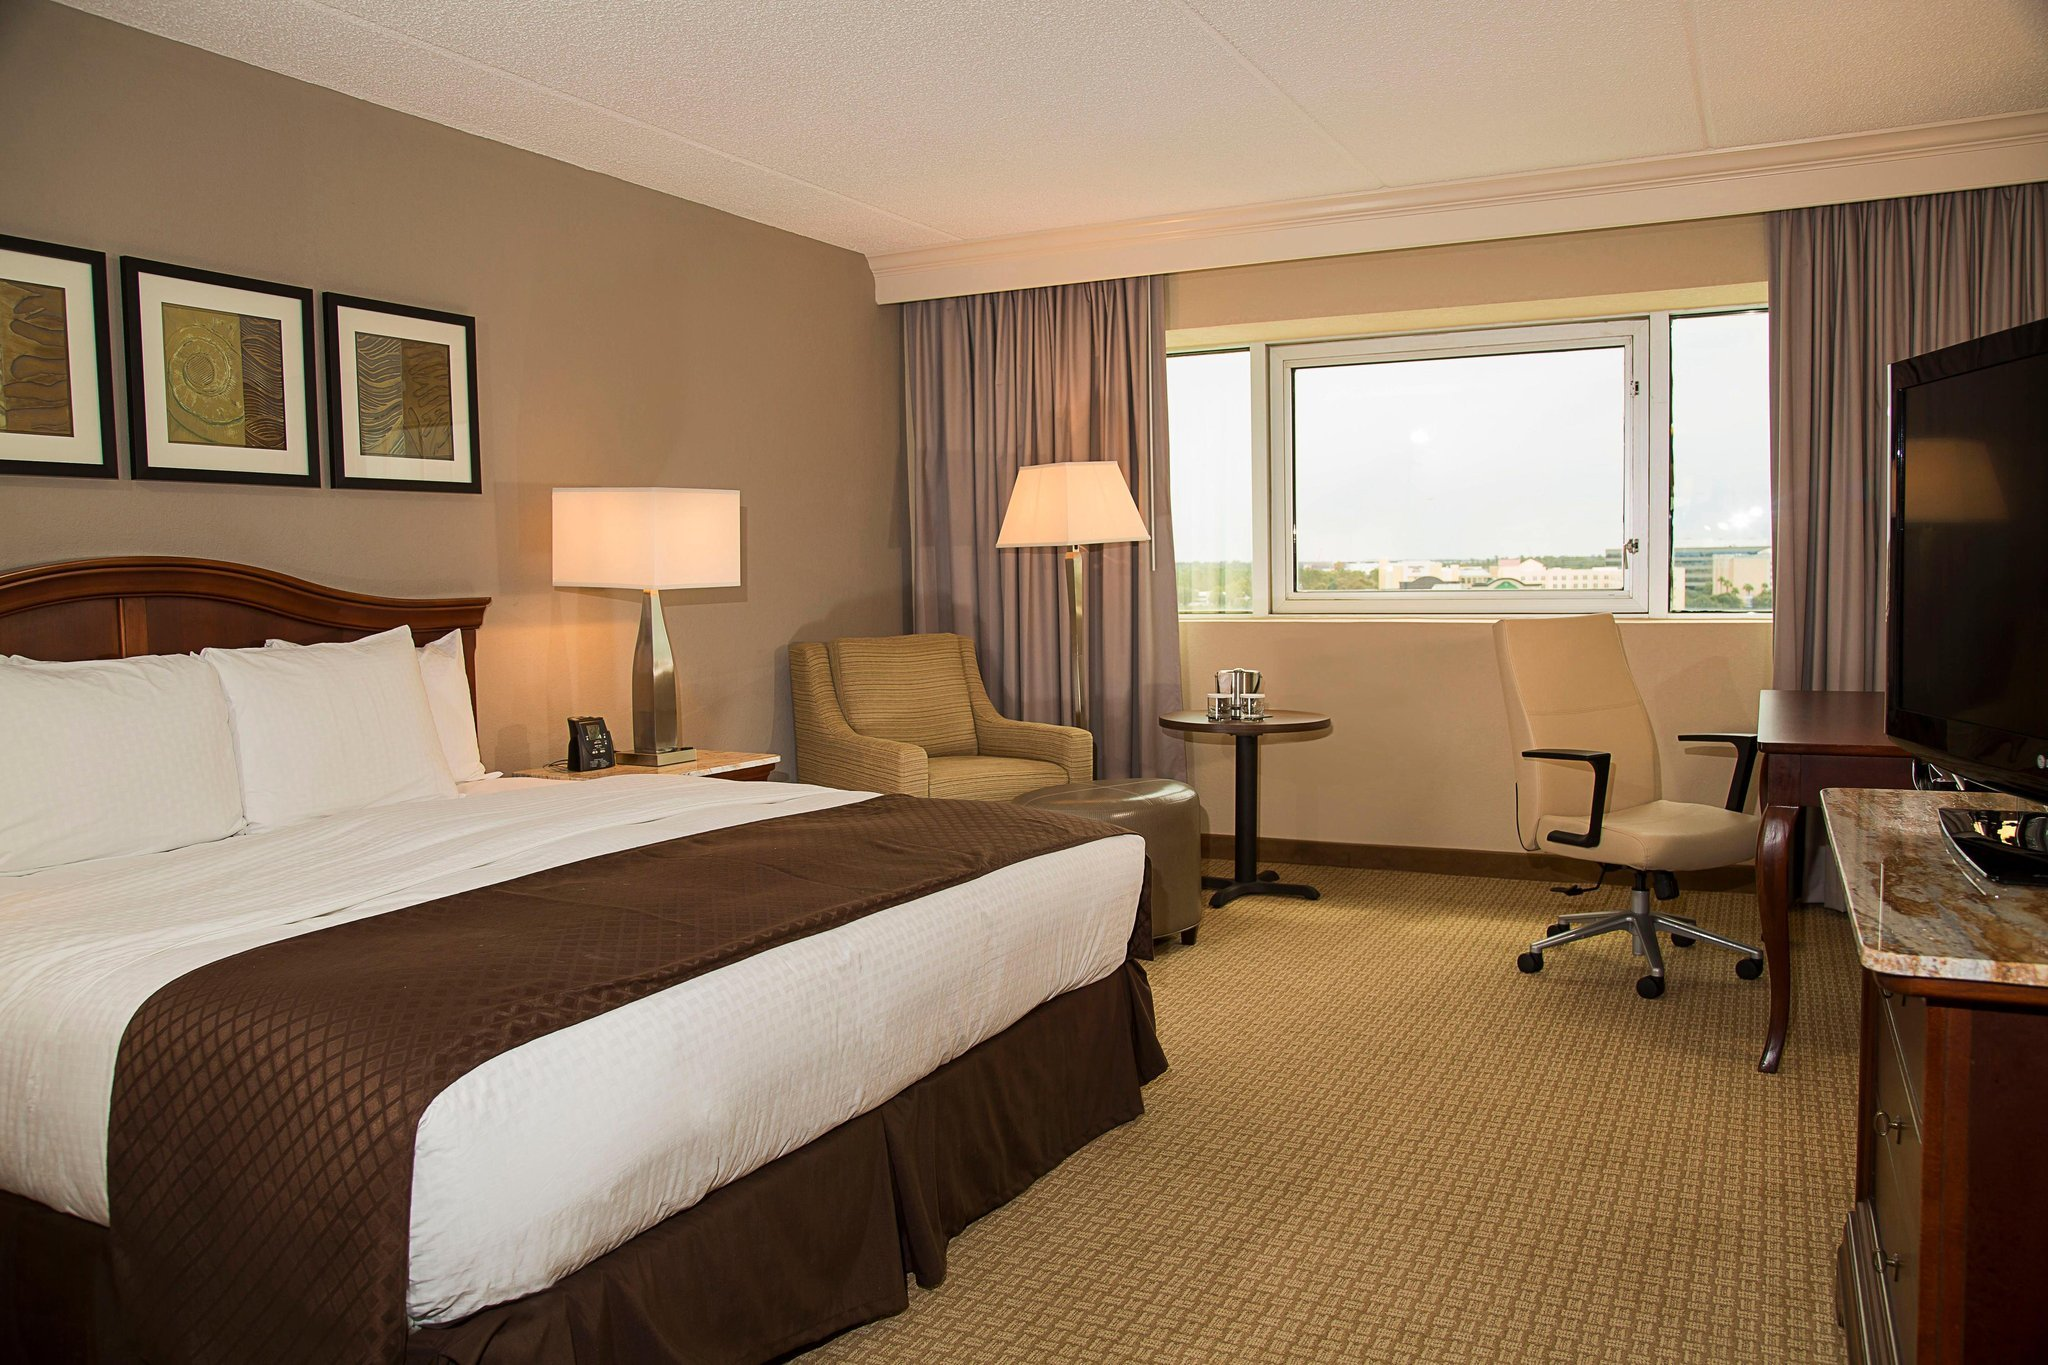 DoubleTree by Hilton Orlando Airport Hotel